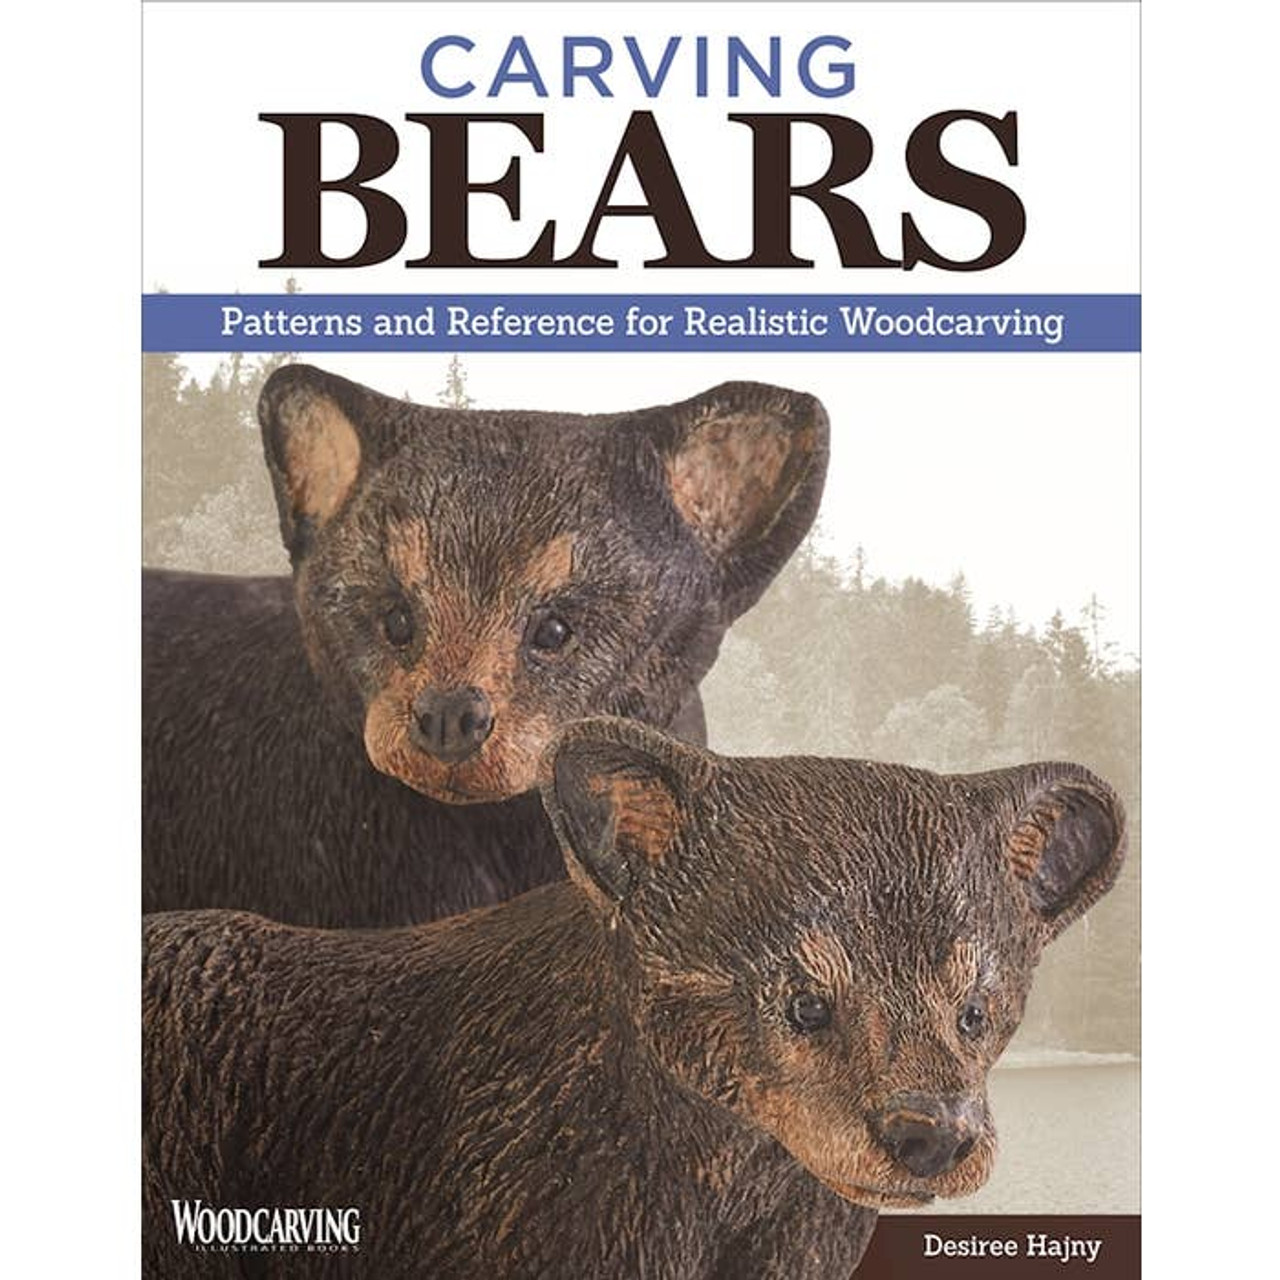 Carving Bears is packed with patterns and references for realistic woodcarving.